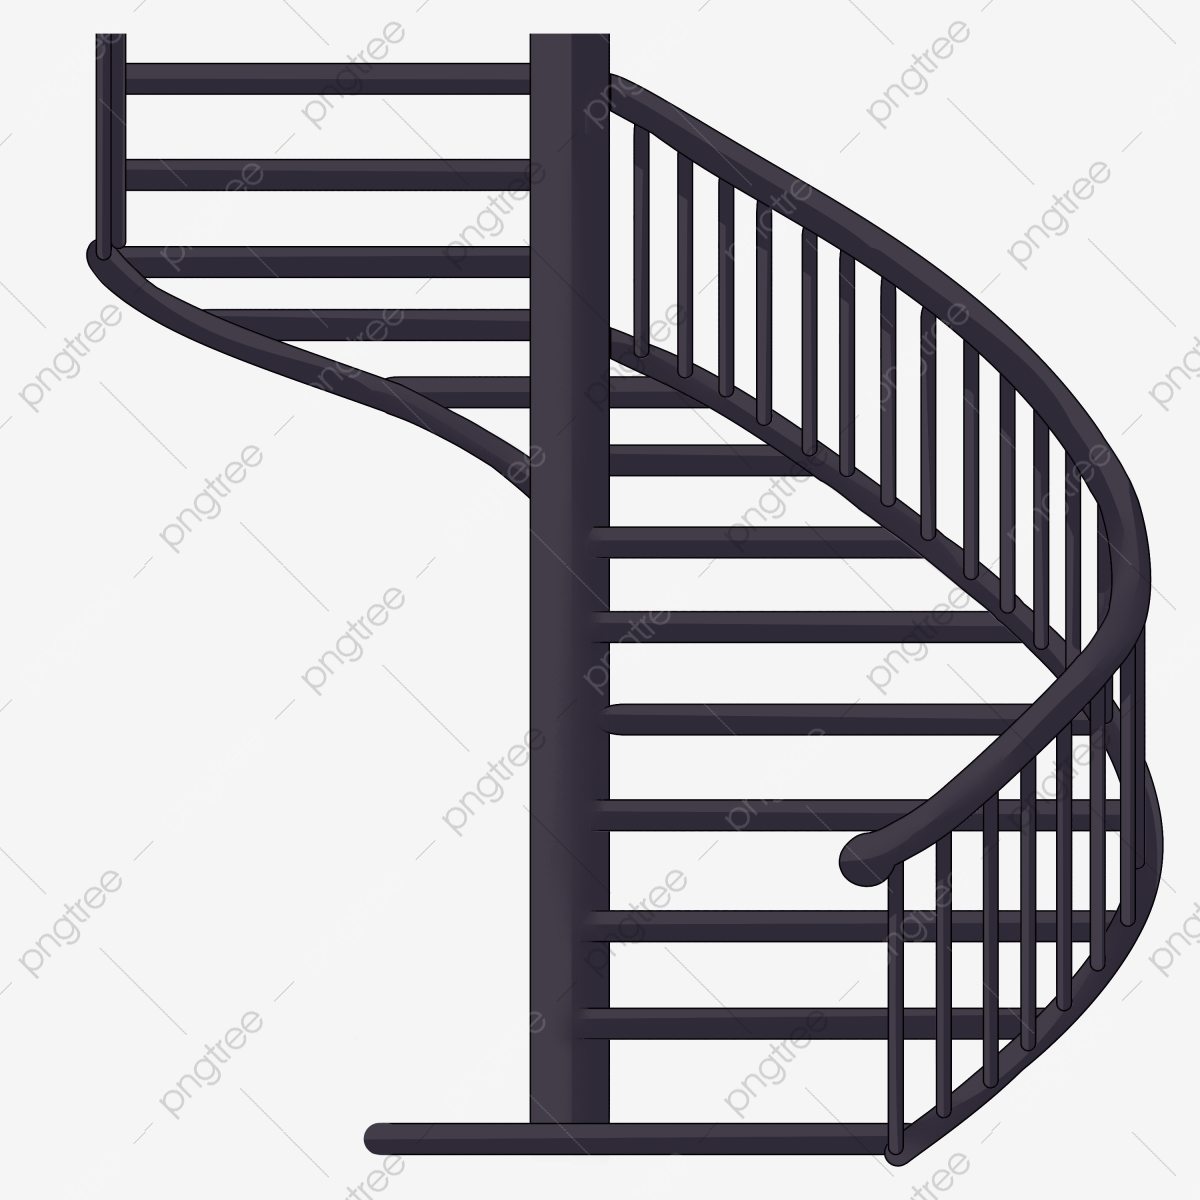 Blue Spiral Staircase Illustration Black Ladder Cartoon Staircase Illustration Stairs Png Transparent Clipart Image And Psd File For Free Download